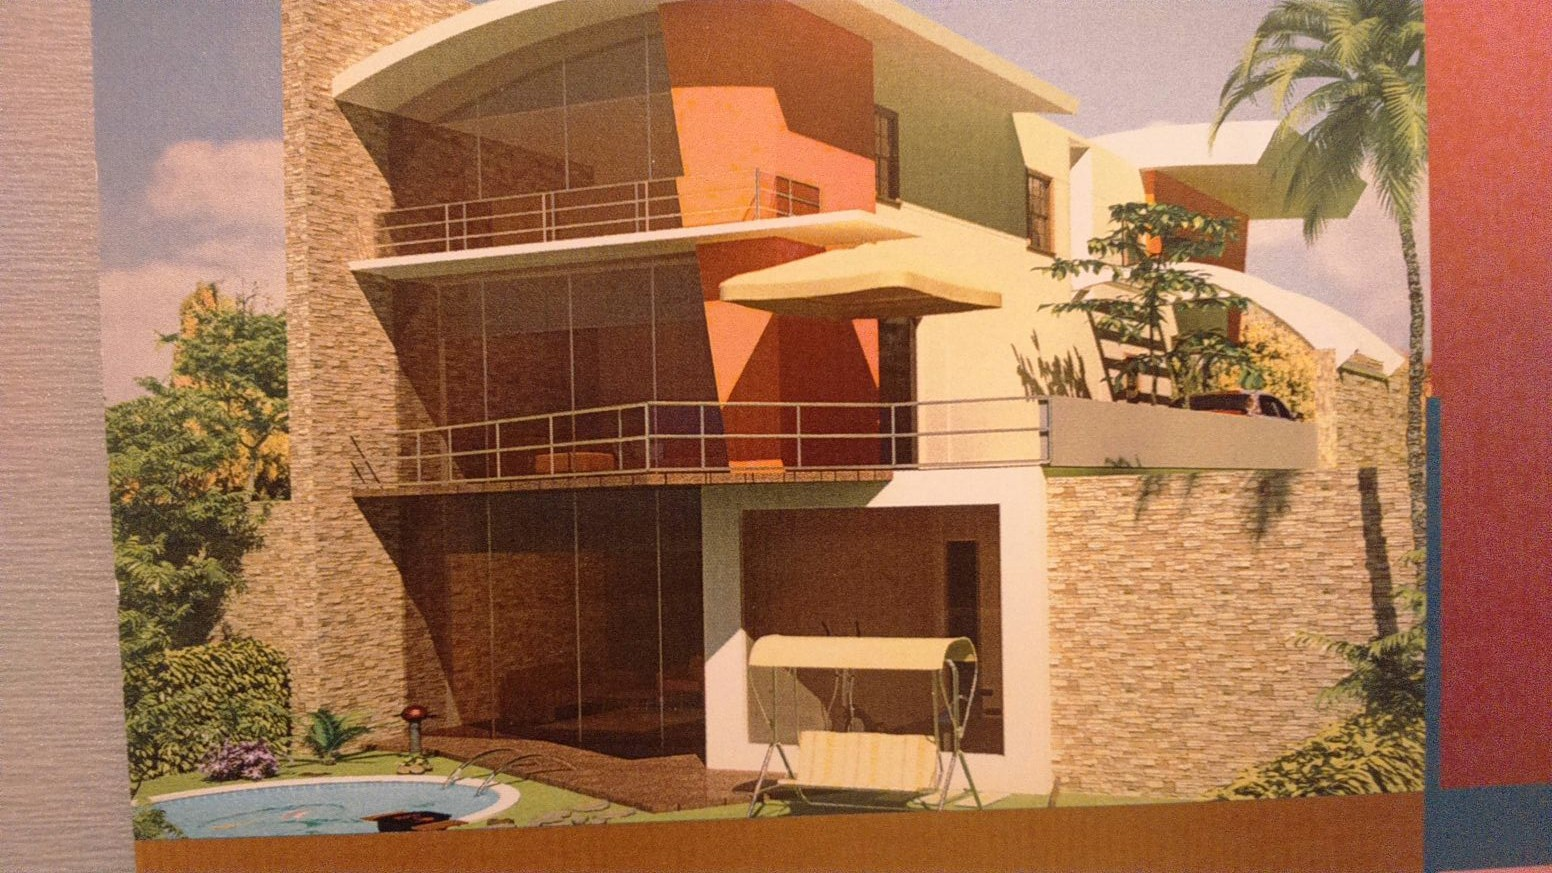 For sale Villa stand alone Life view Compound fifth districtNew Cairo